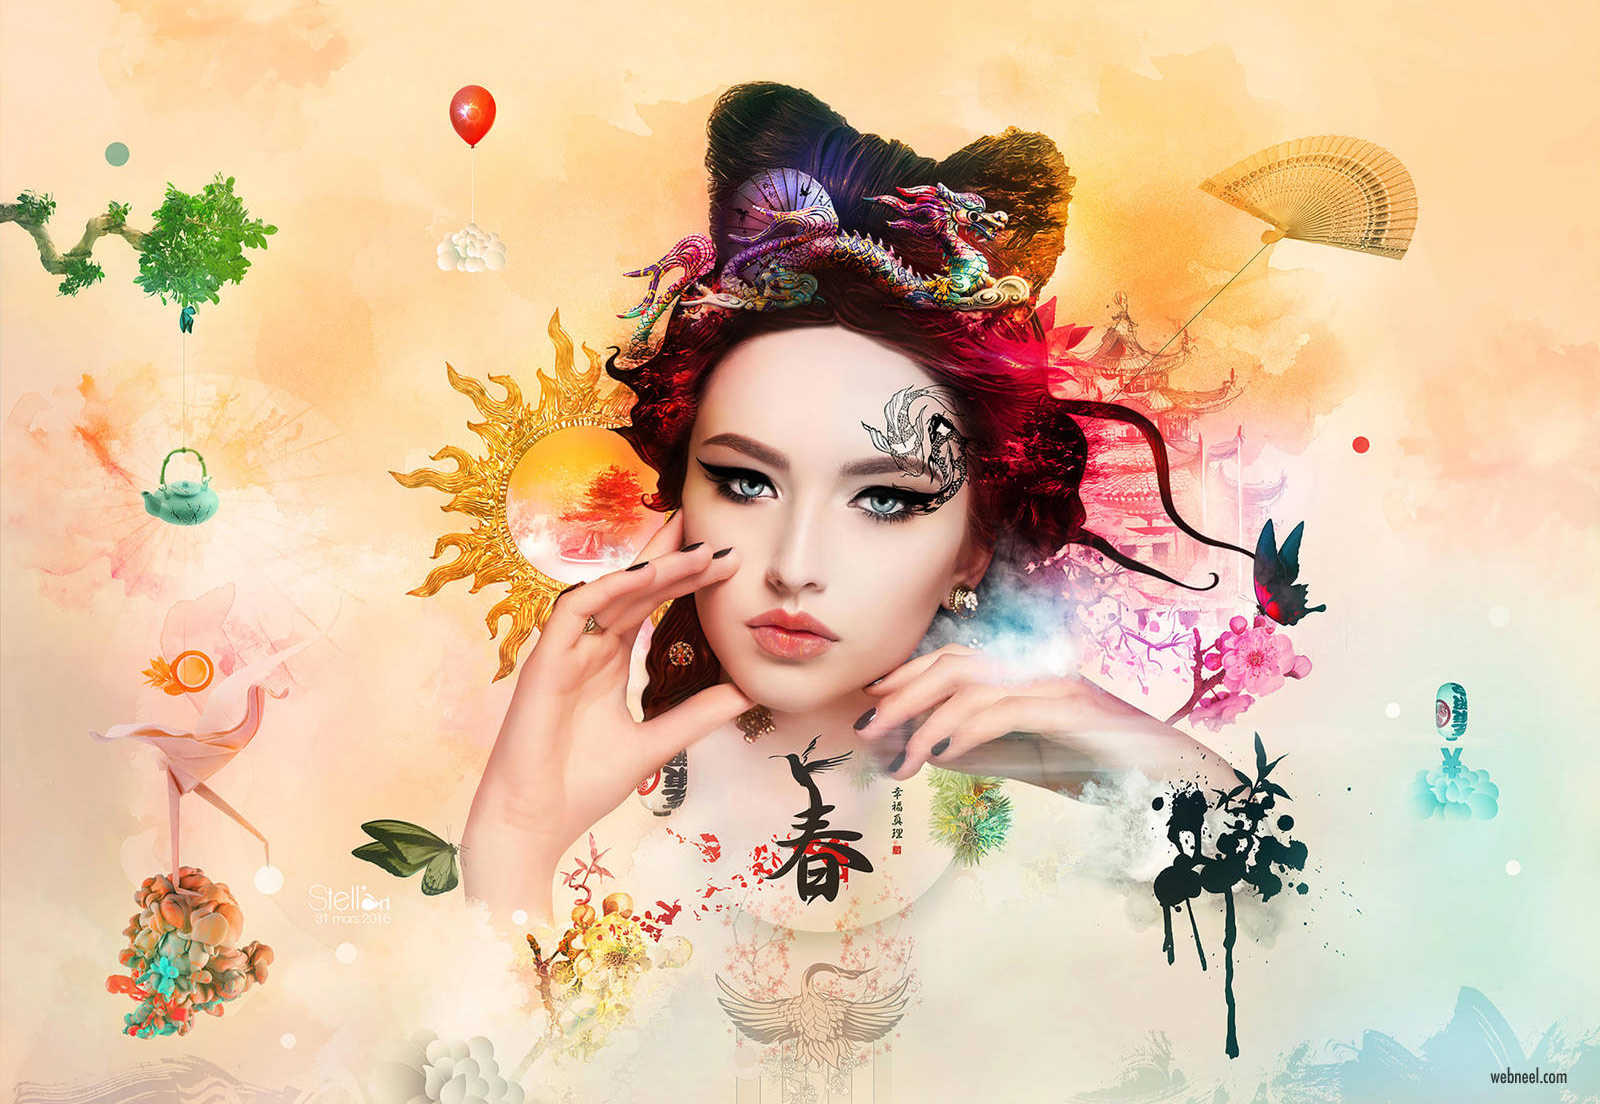 photo manipulation photoshop wallpaper by stellart